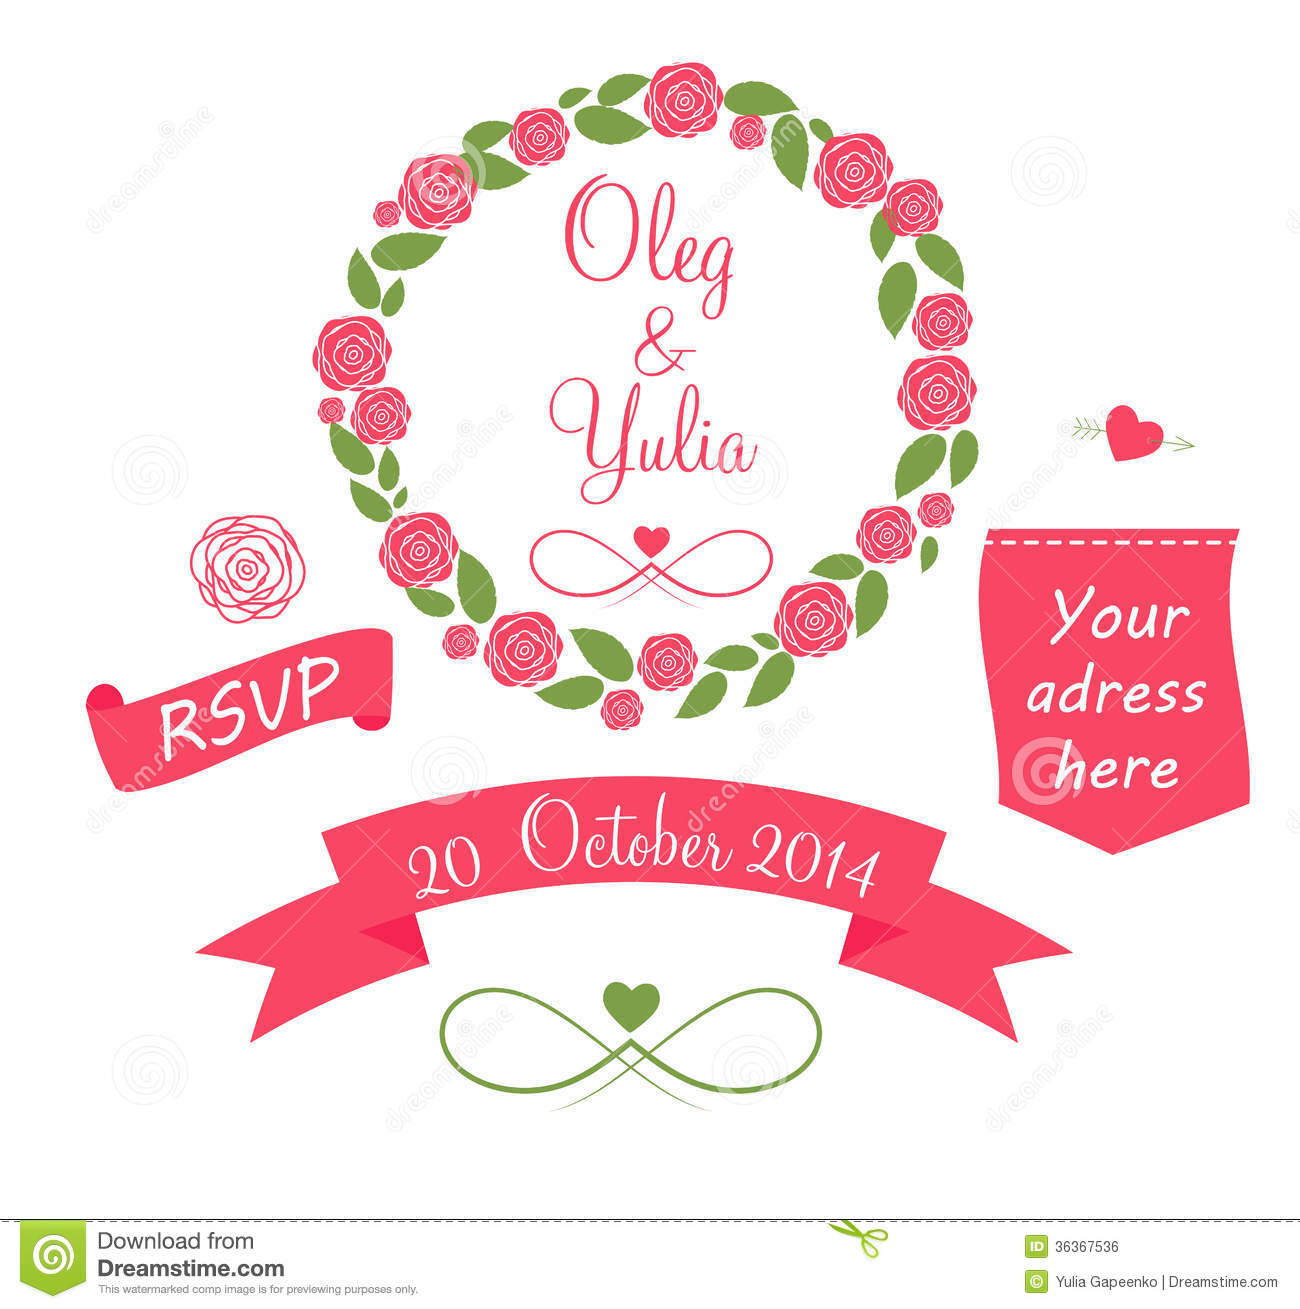 Wedding Graphics: Set Of Wedding Graphic Elements With Arrows, Royalty Free